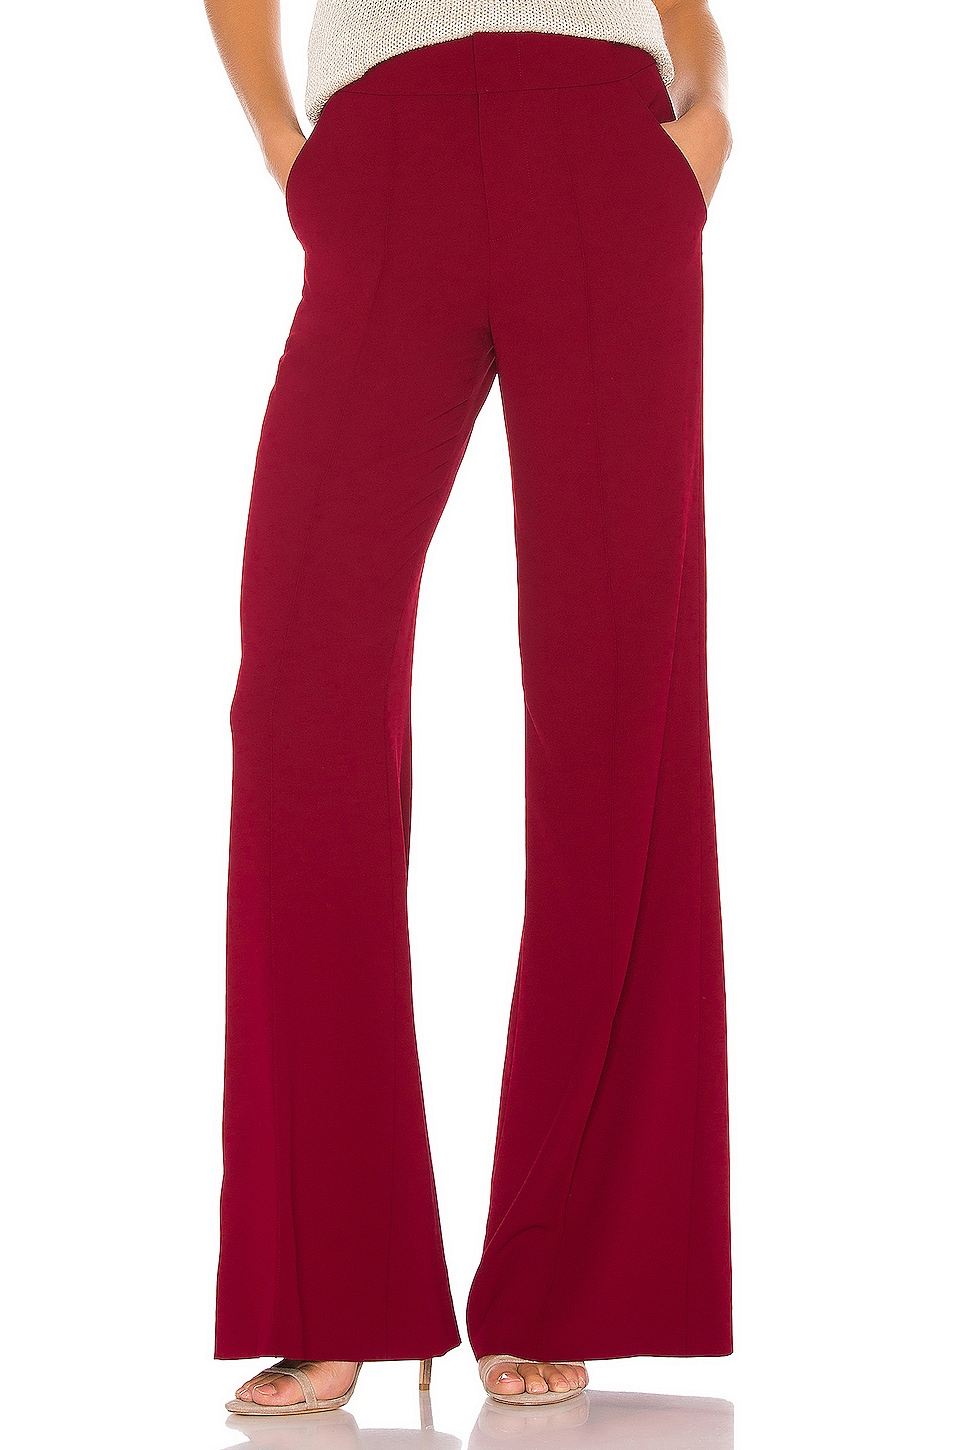 Alice + Olivia Dylan High Waist Wide Leg Pant in Bordeaux